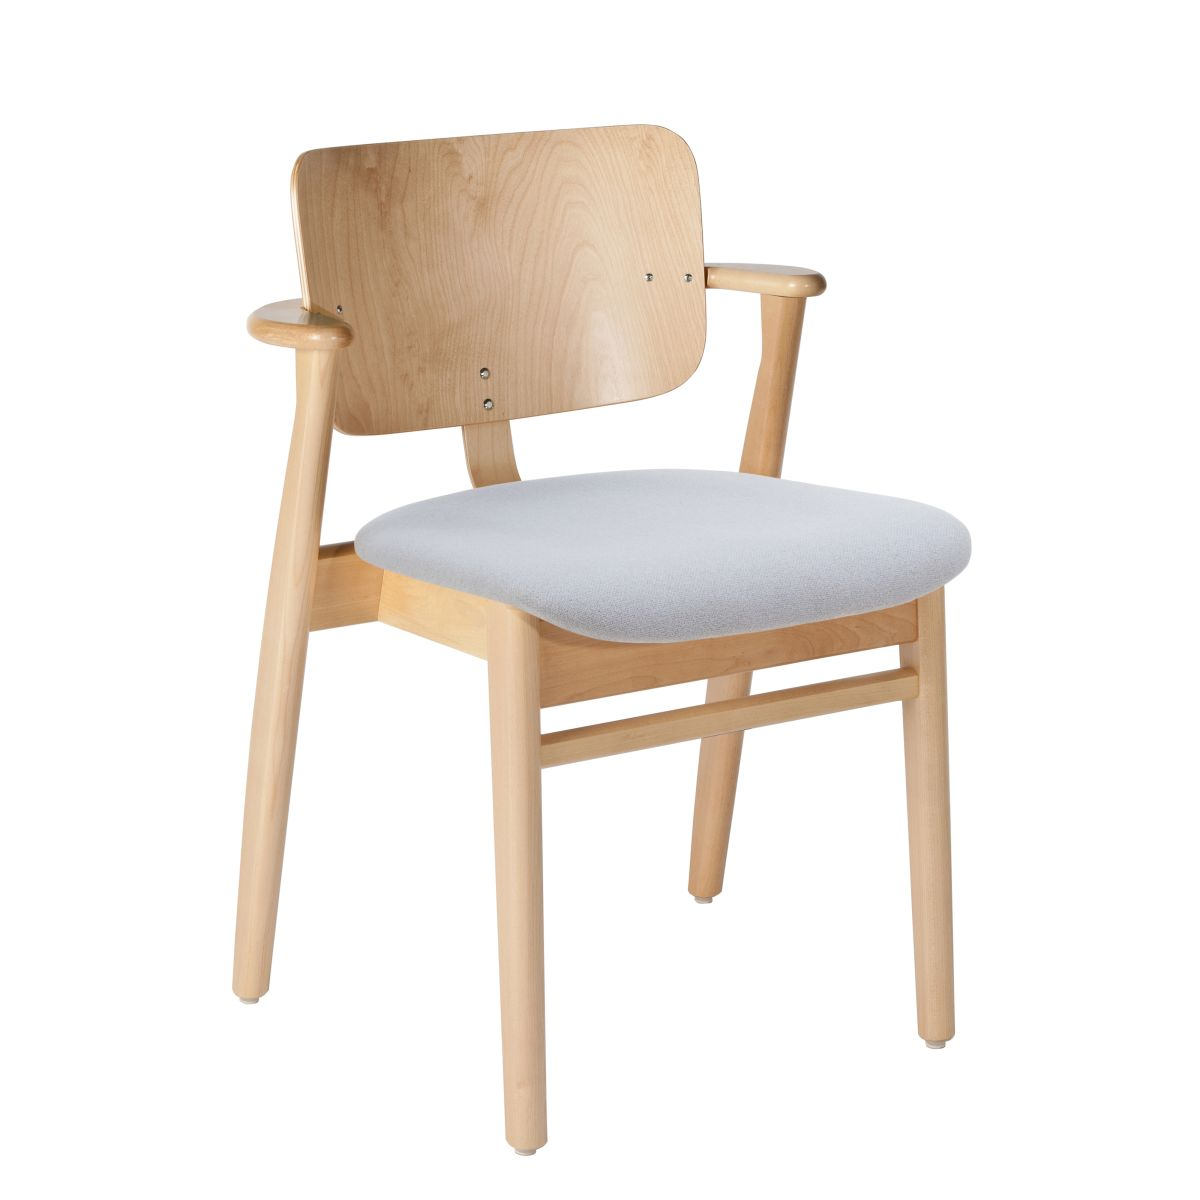 Domus Chair clear laquered birch_seat fabric grey